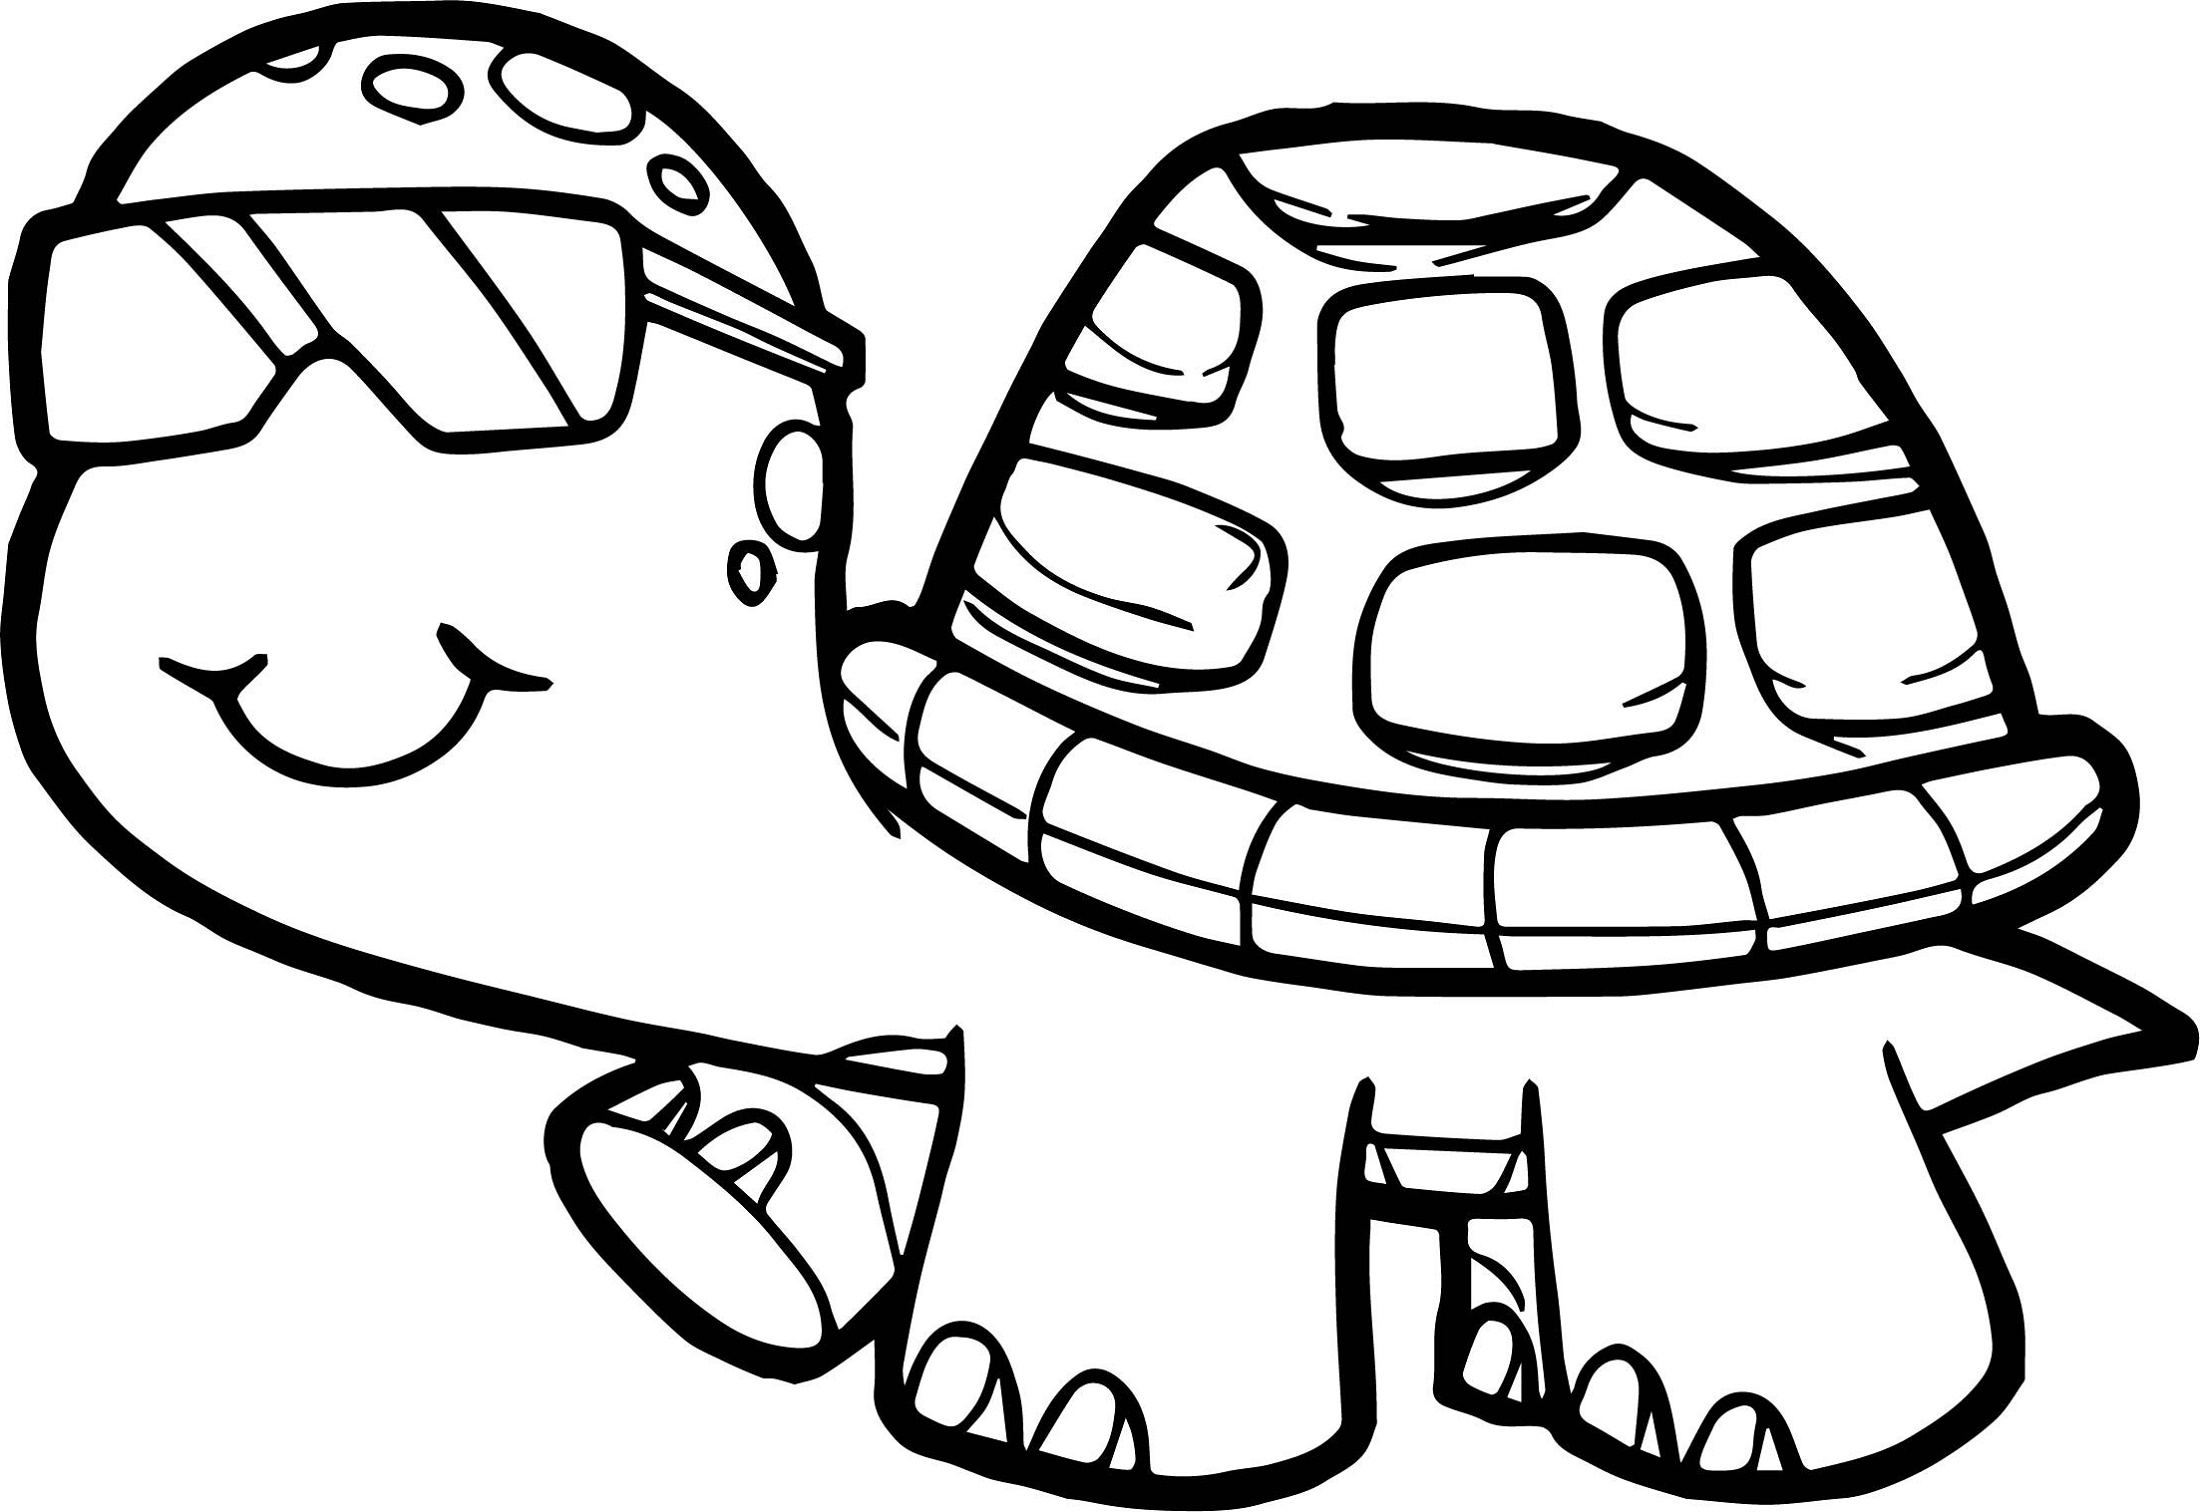 turtle coloring book page turtles coloring pages download and print turtles book turtle coloring page